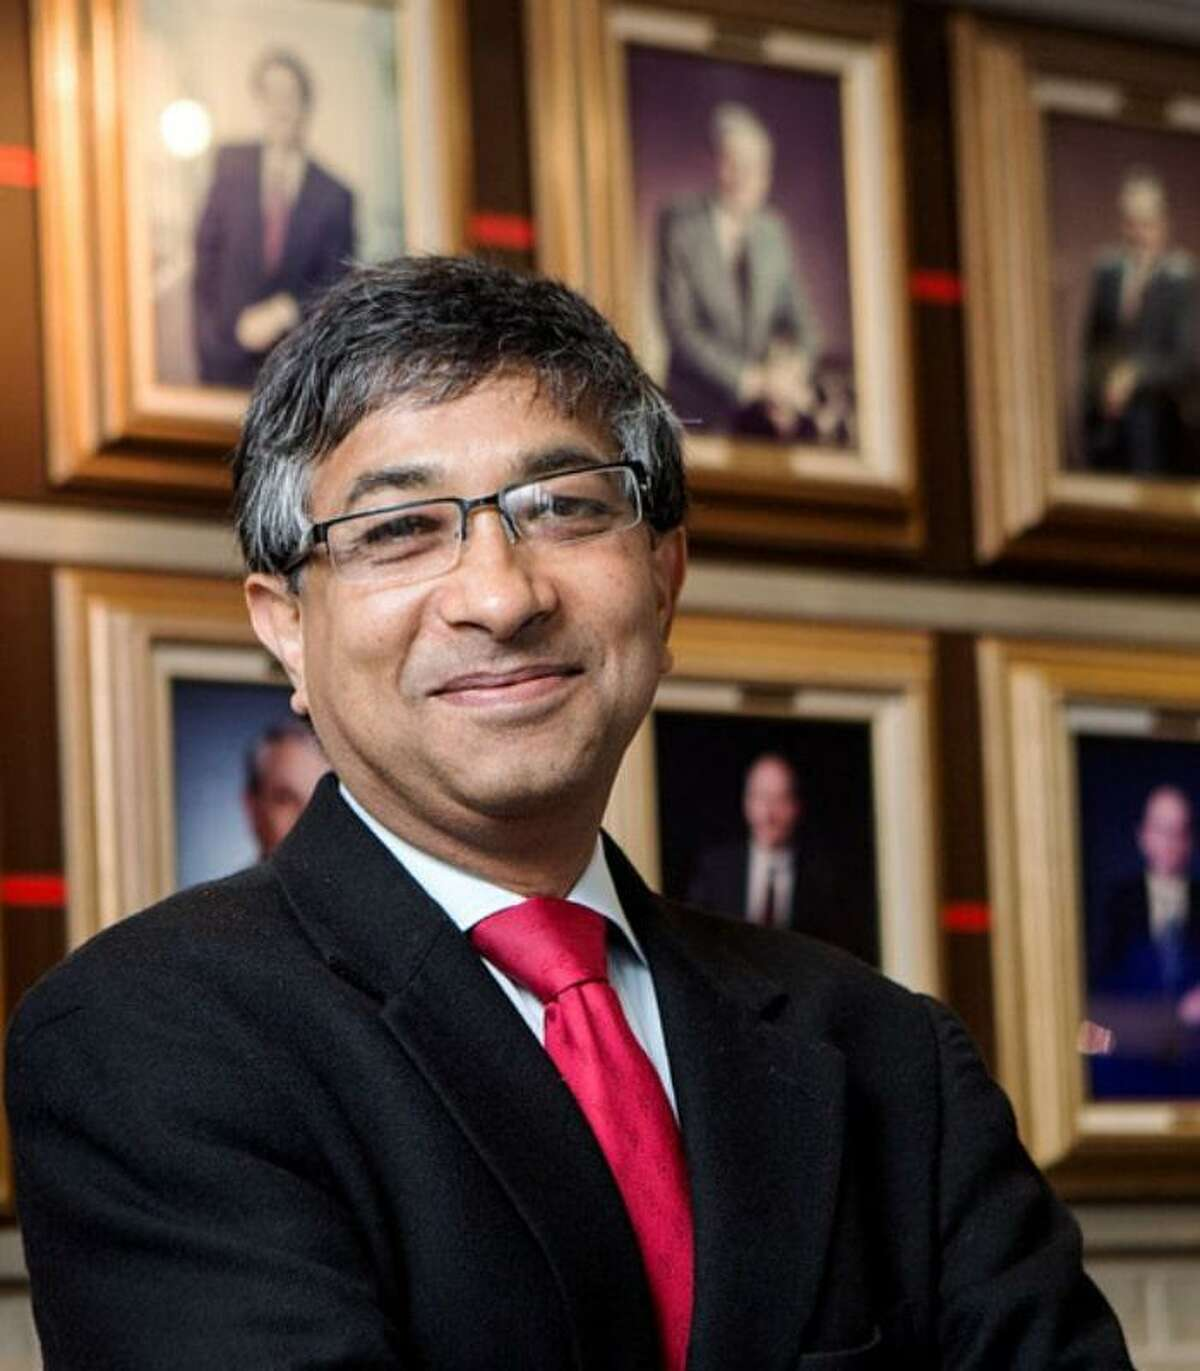 Ramanan Krishnamoorti is a chemical engineer and chief energy officer at the University of Houston